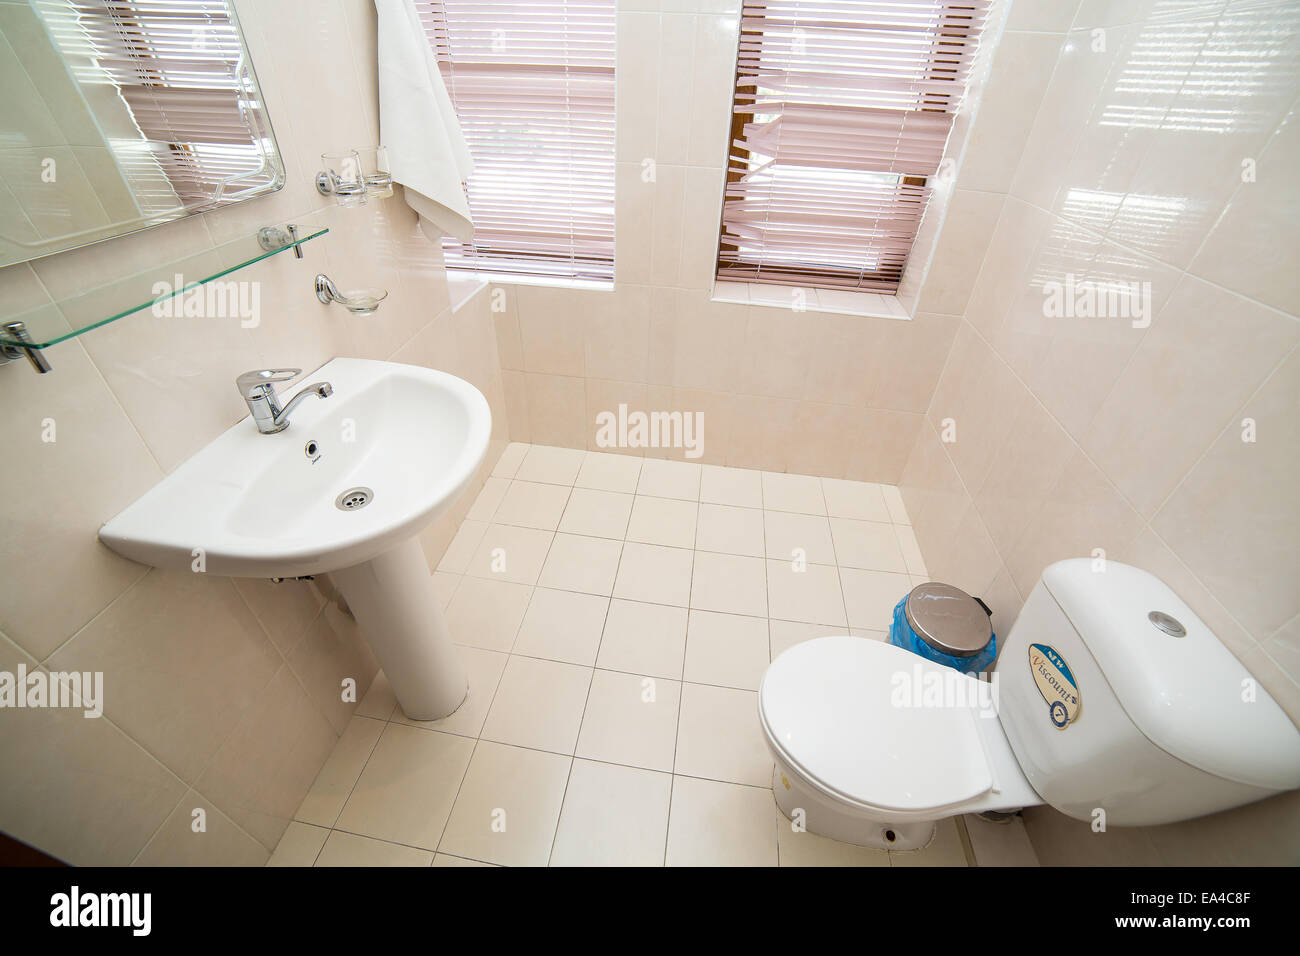 Bathroom, WC, toilet, lavatory room interior design Stock Photo ...